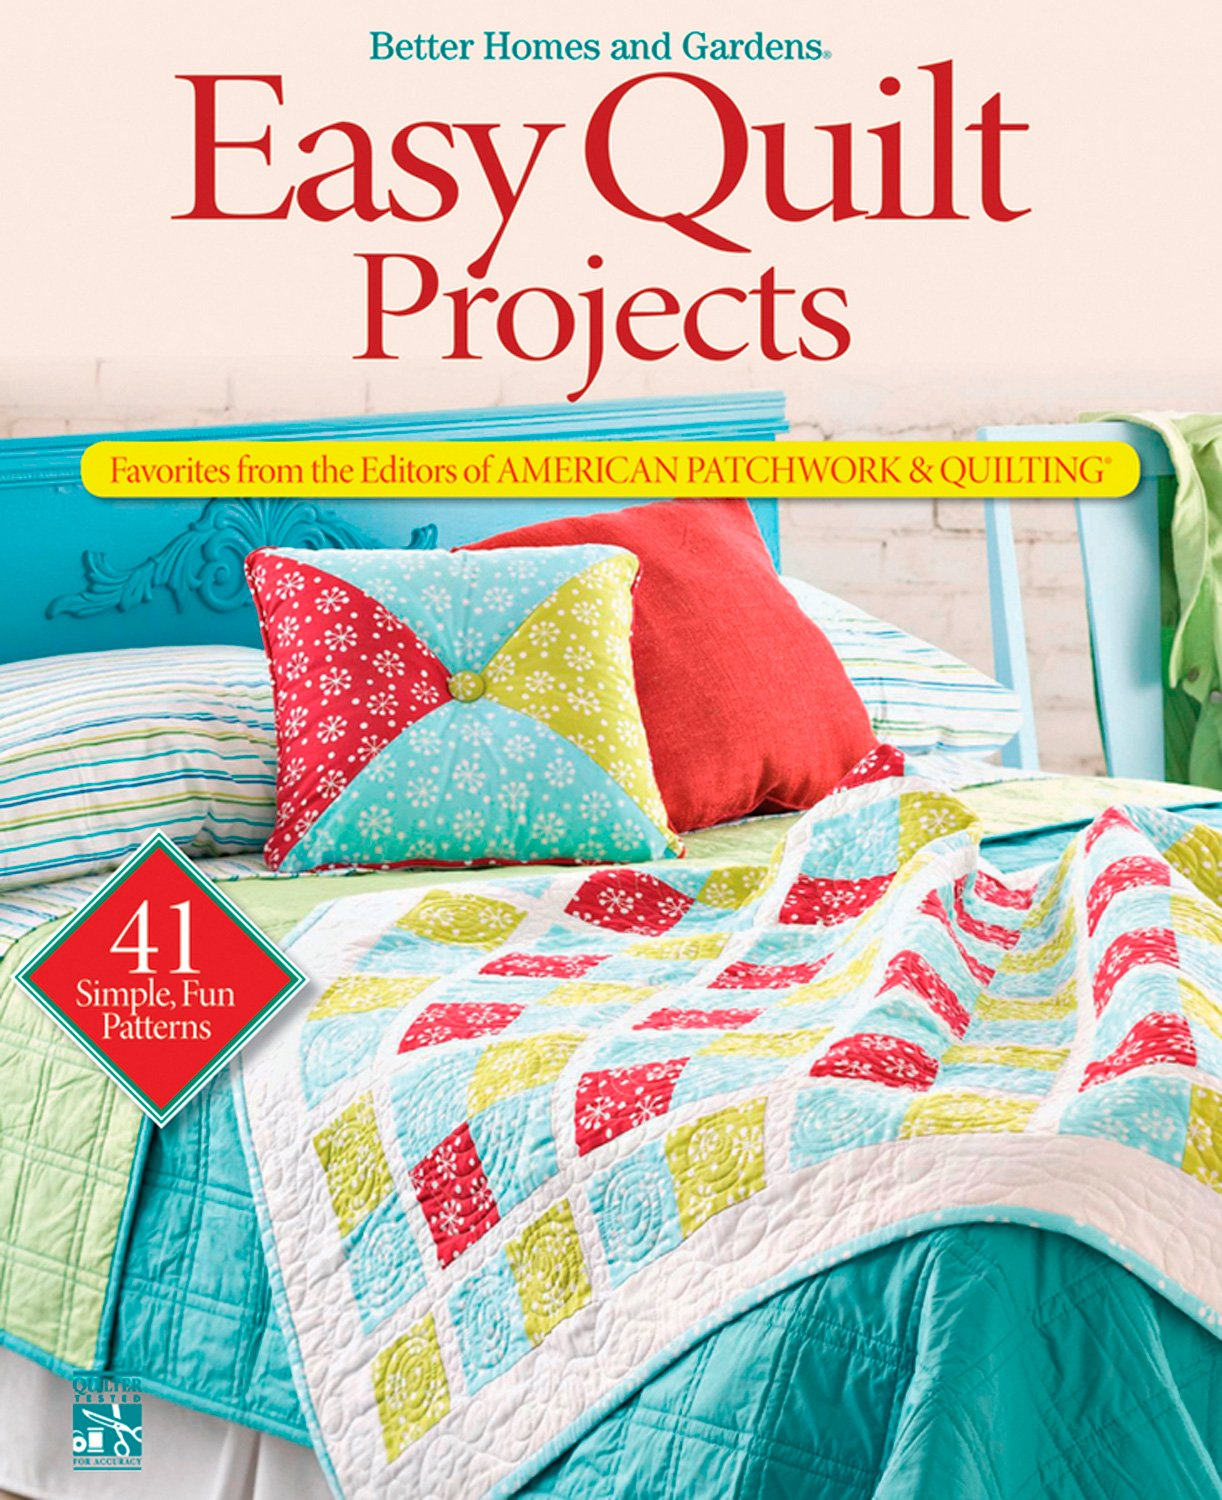 Easy Quilt Projects: Favorites from the Editors of American ... : better homes and gardens quilting - Adamdwight.com